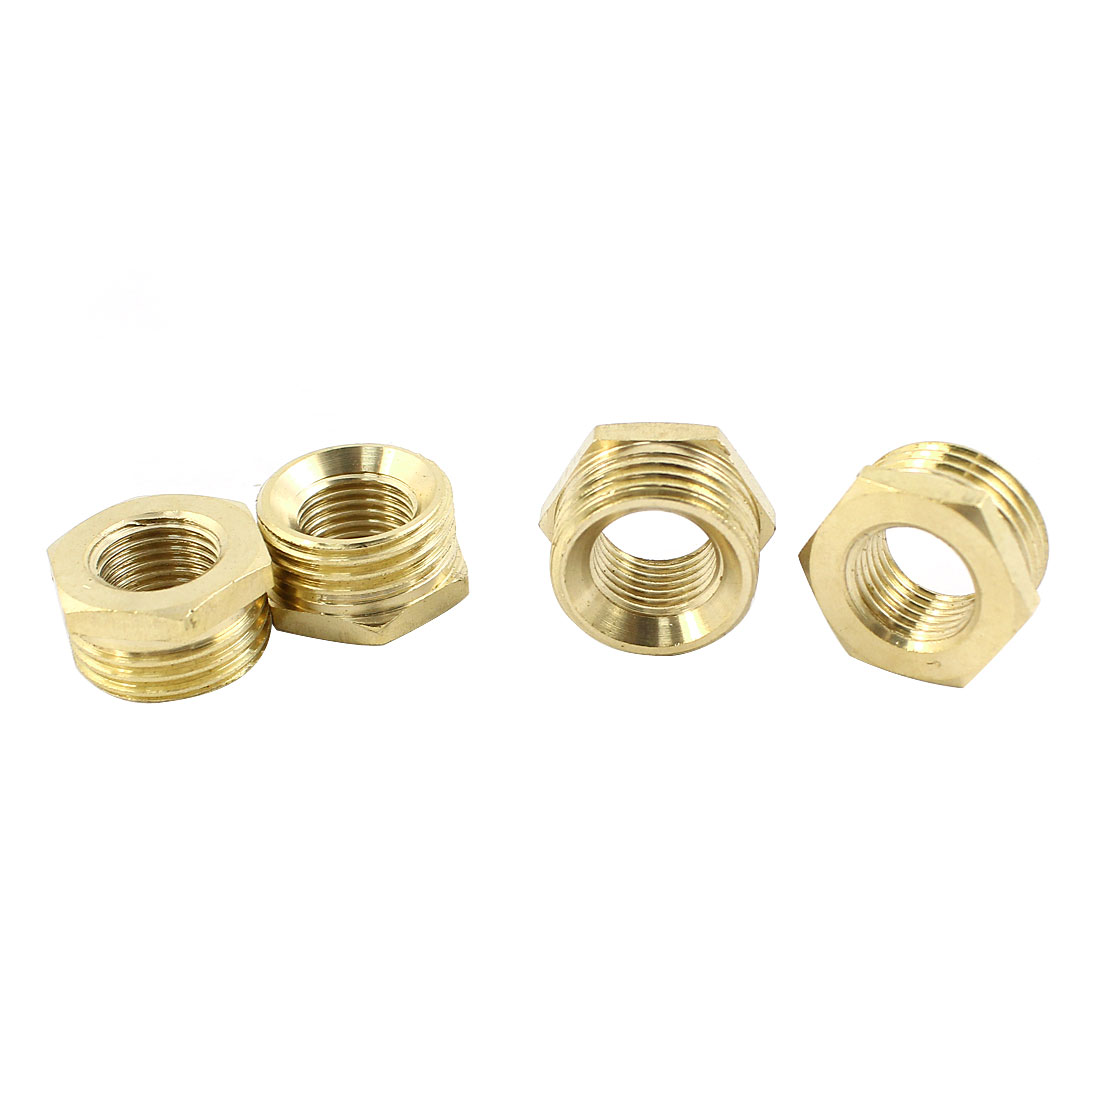 4 Pcs Air Pipe Fittings Male 1/2PT to Female 1/4 PT Exterior Hex Head Socket Adapter Plug Caps